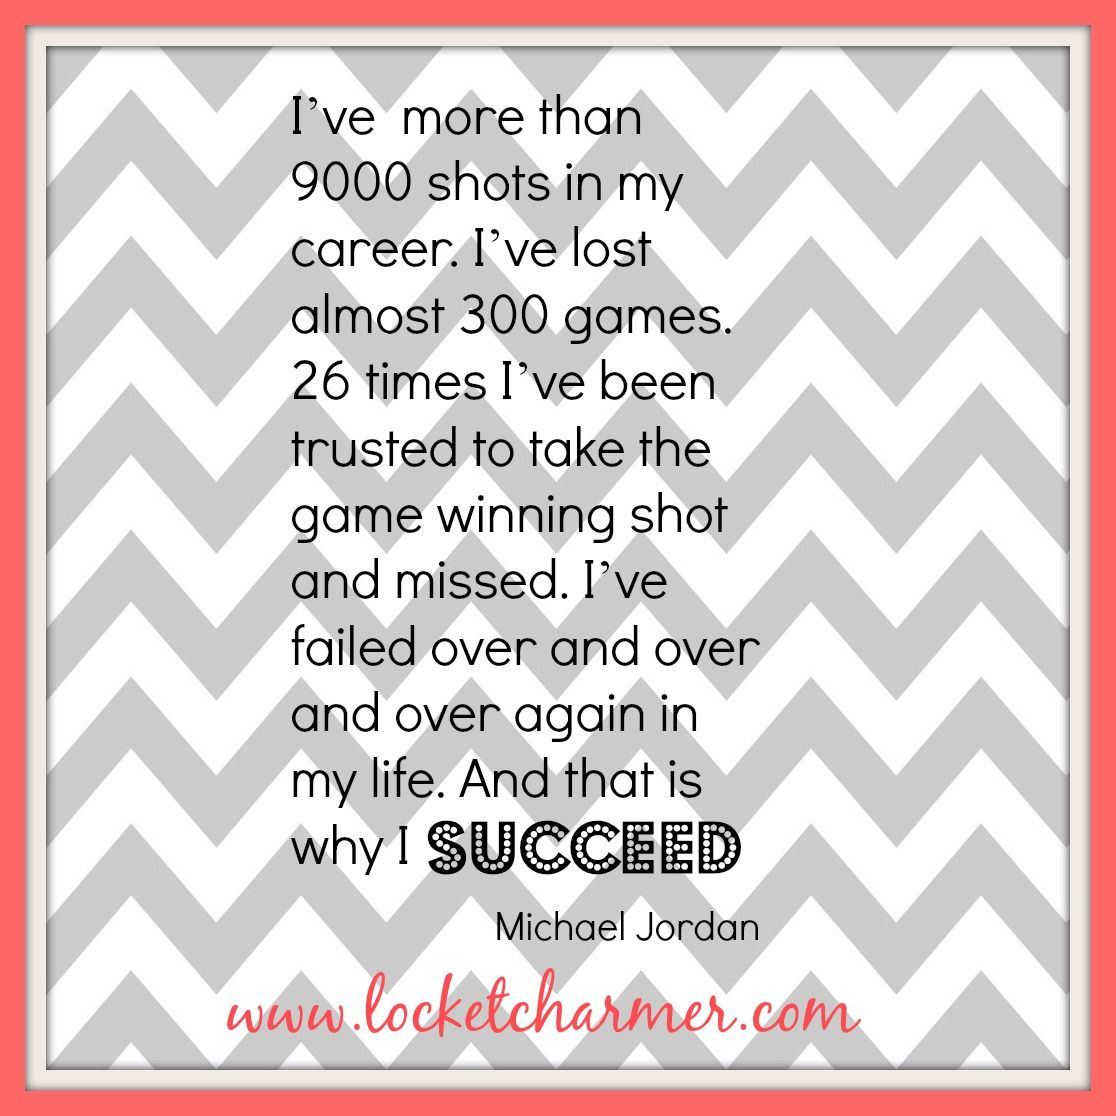 WOW...powerful! #success #southhilldesigns #locketcharmer #directsales #joinmyteam  #opportunity #mom #successathome #motivationalquotes